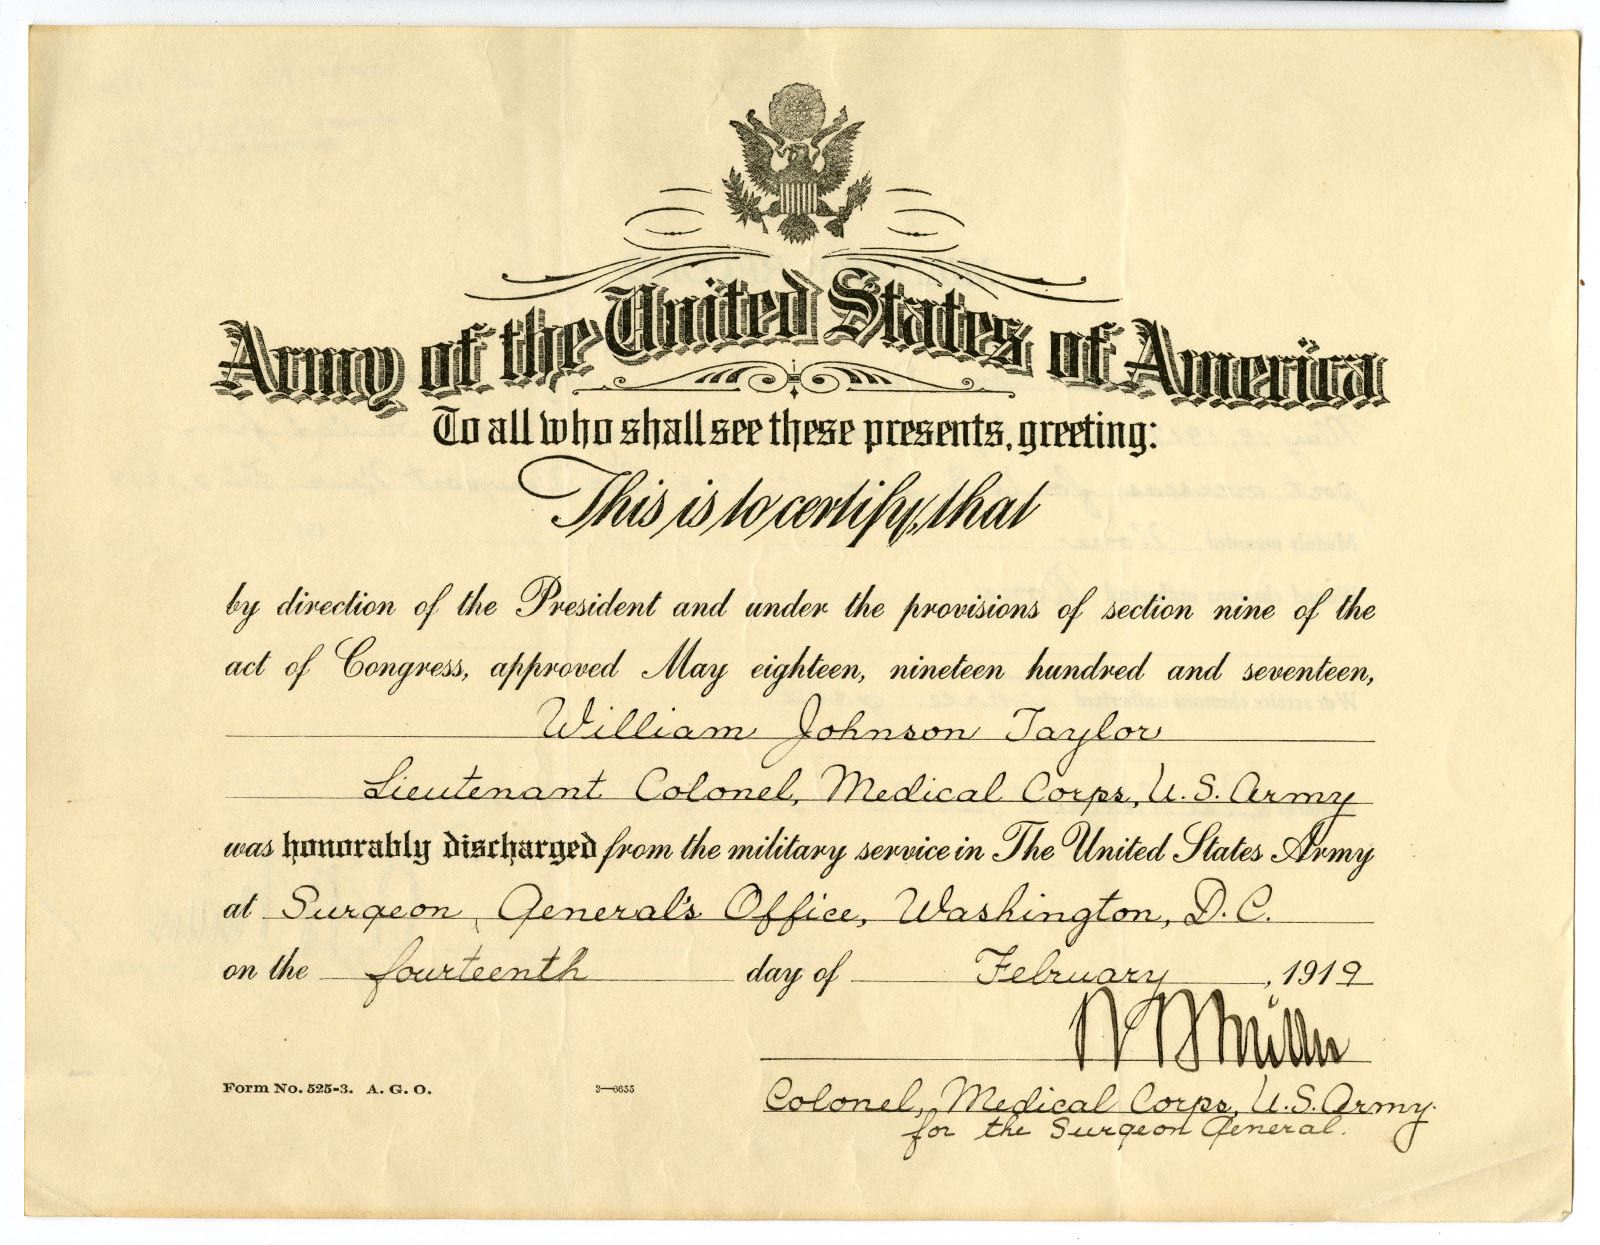 United States Army, Military discharge paper for Dr. William J. Taylor (1919). Loan courtesy of the Historical Society of Pennsylvania.